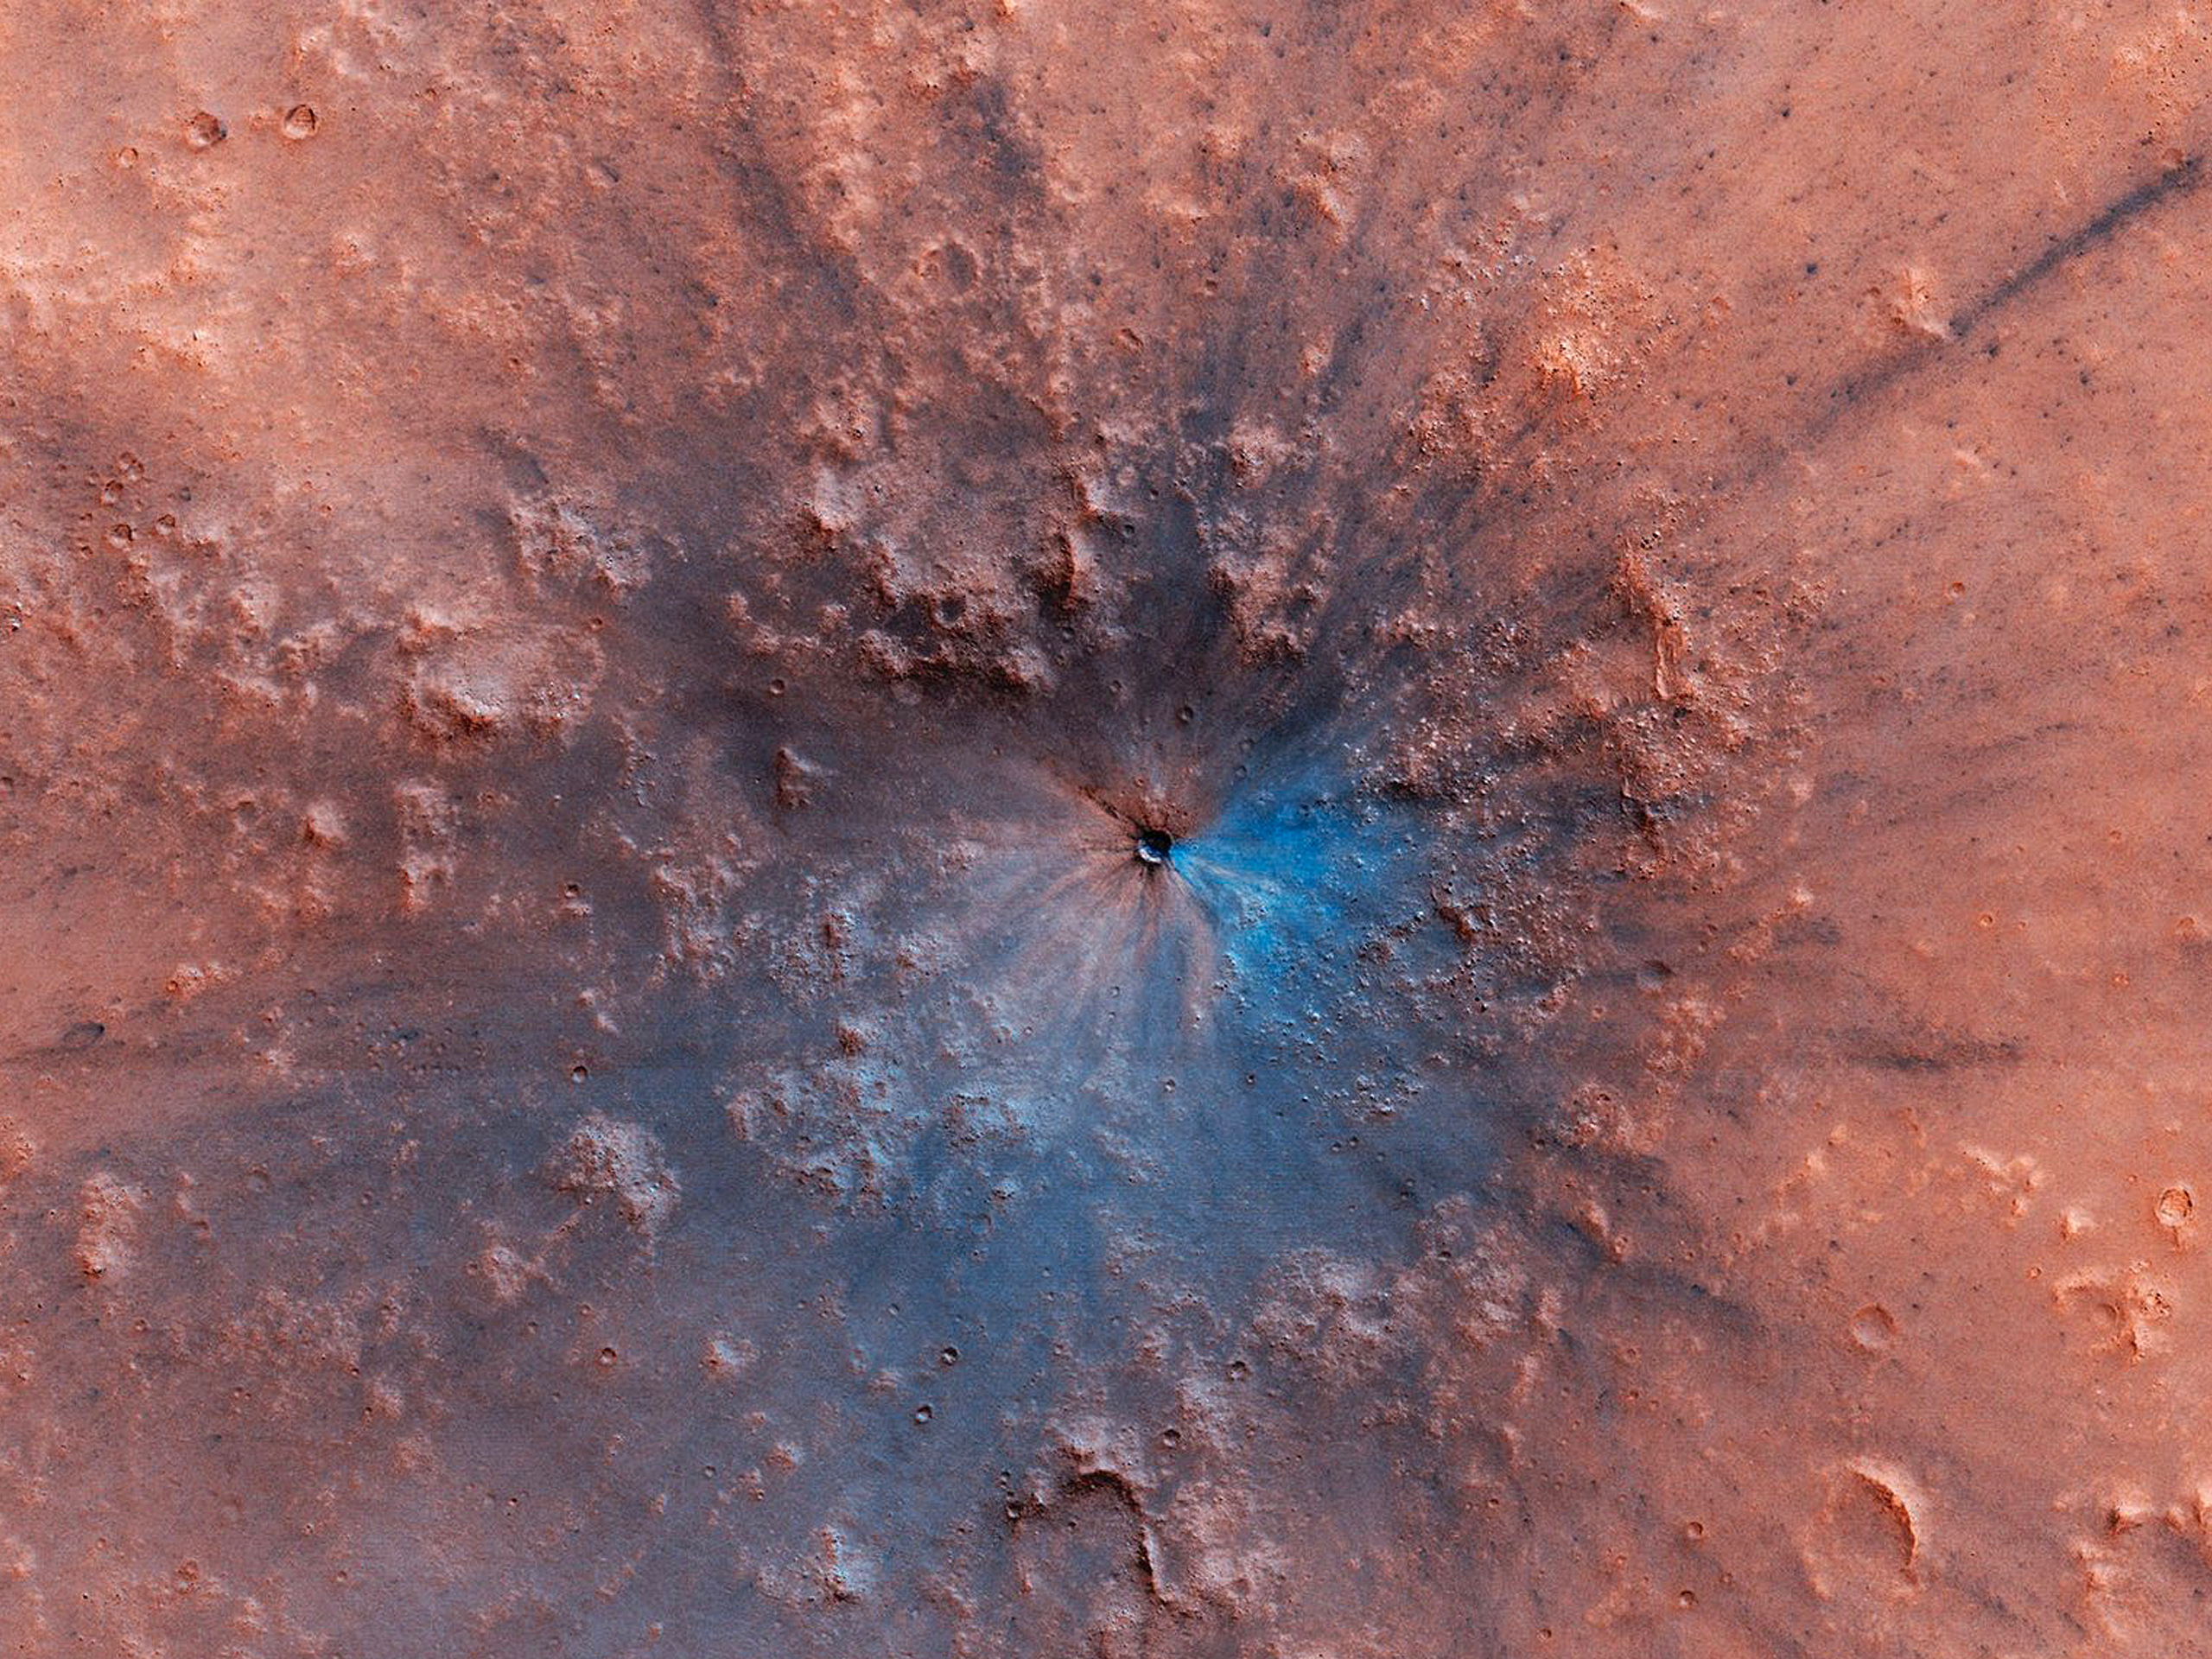 Amazing crater on Mars